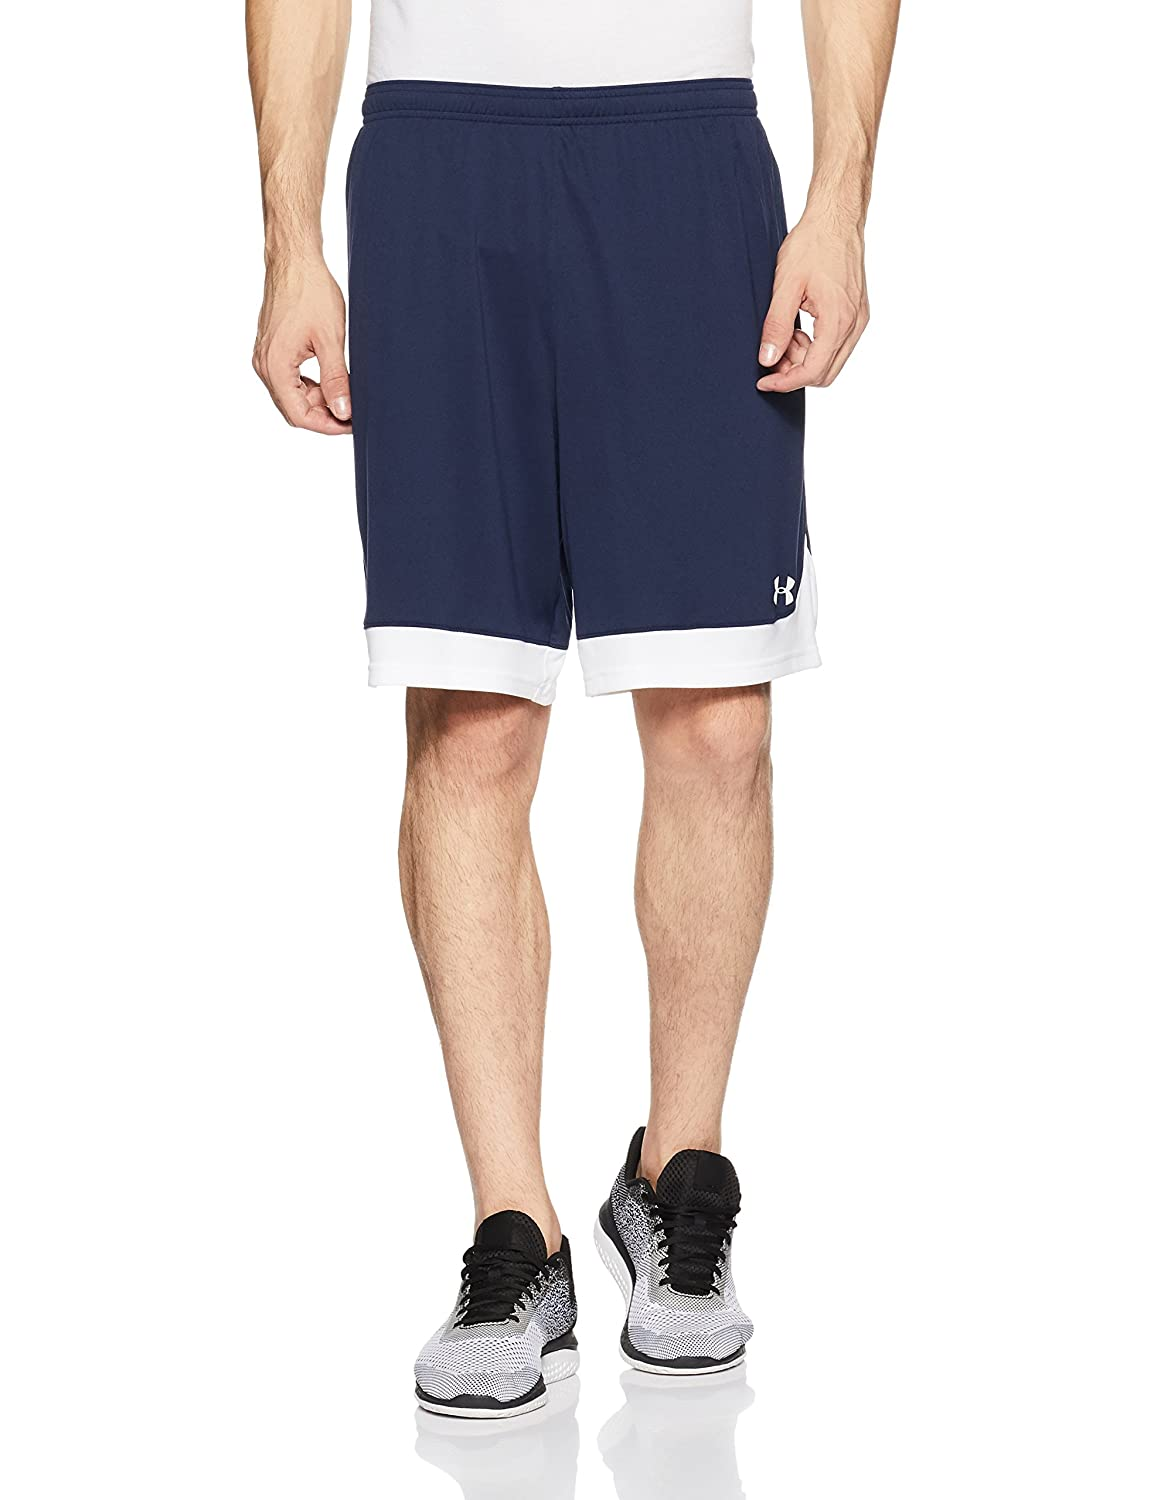 Under Armour Men's Maquina Shorts Under Armour Apparel 1270927